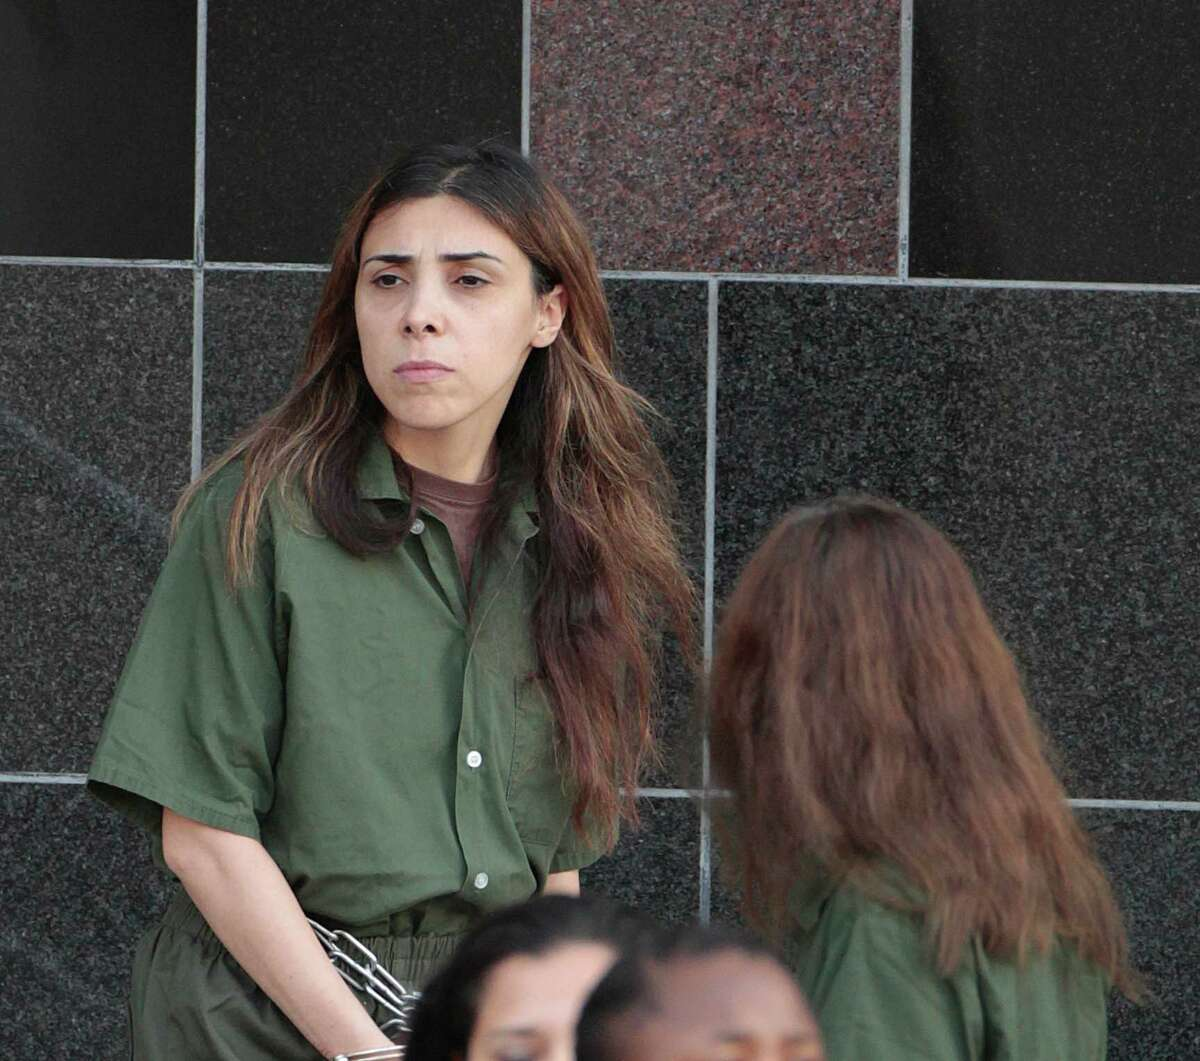 Sevinj Taghiyva is transported from the Bob Casey Federal Courthouse Wednesday, Oct. 10, 2012, in Houston. Taghiyva is one of the women that has been indicted for allegedly being part of a scheme to illicitly funnel military cutting-edge microelectronics to Russia. Alexander Fishenko ran a Houston-based company that obtained highly regulated technology from U.S. makers and clandestinely exported it to Russia for use by that country's military and intelligence agencies. U.S. authorities say the microelectronics could have a wide range of military uses, including radar and surveillance systems, weapons guidance systems and detonation triggers. Prosecutors are seeking to deny bond to Fishenko because they consider him a flight risk. (Billy Smith II / Houston Chronicle)